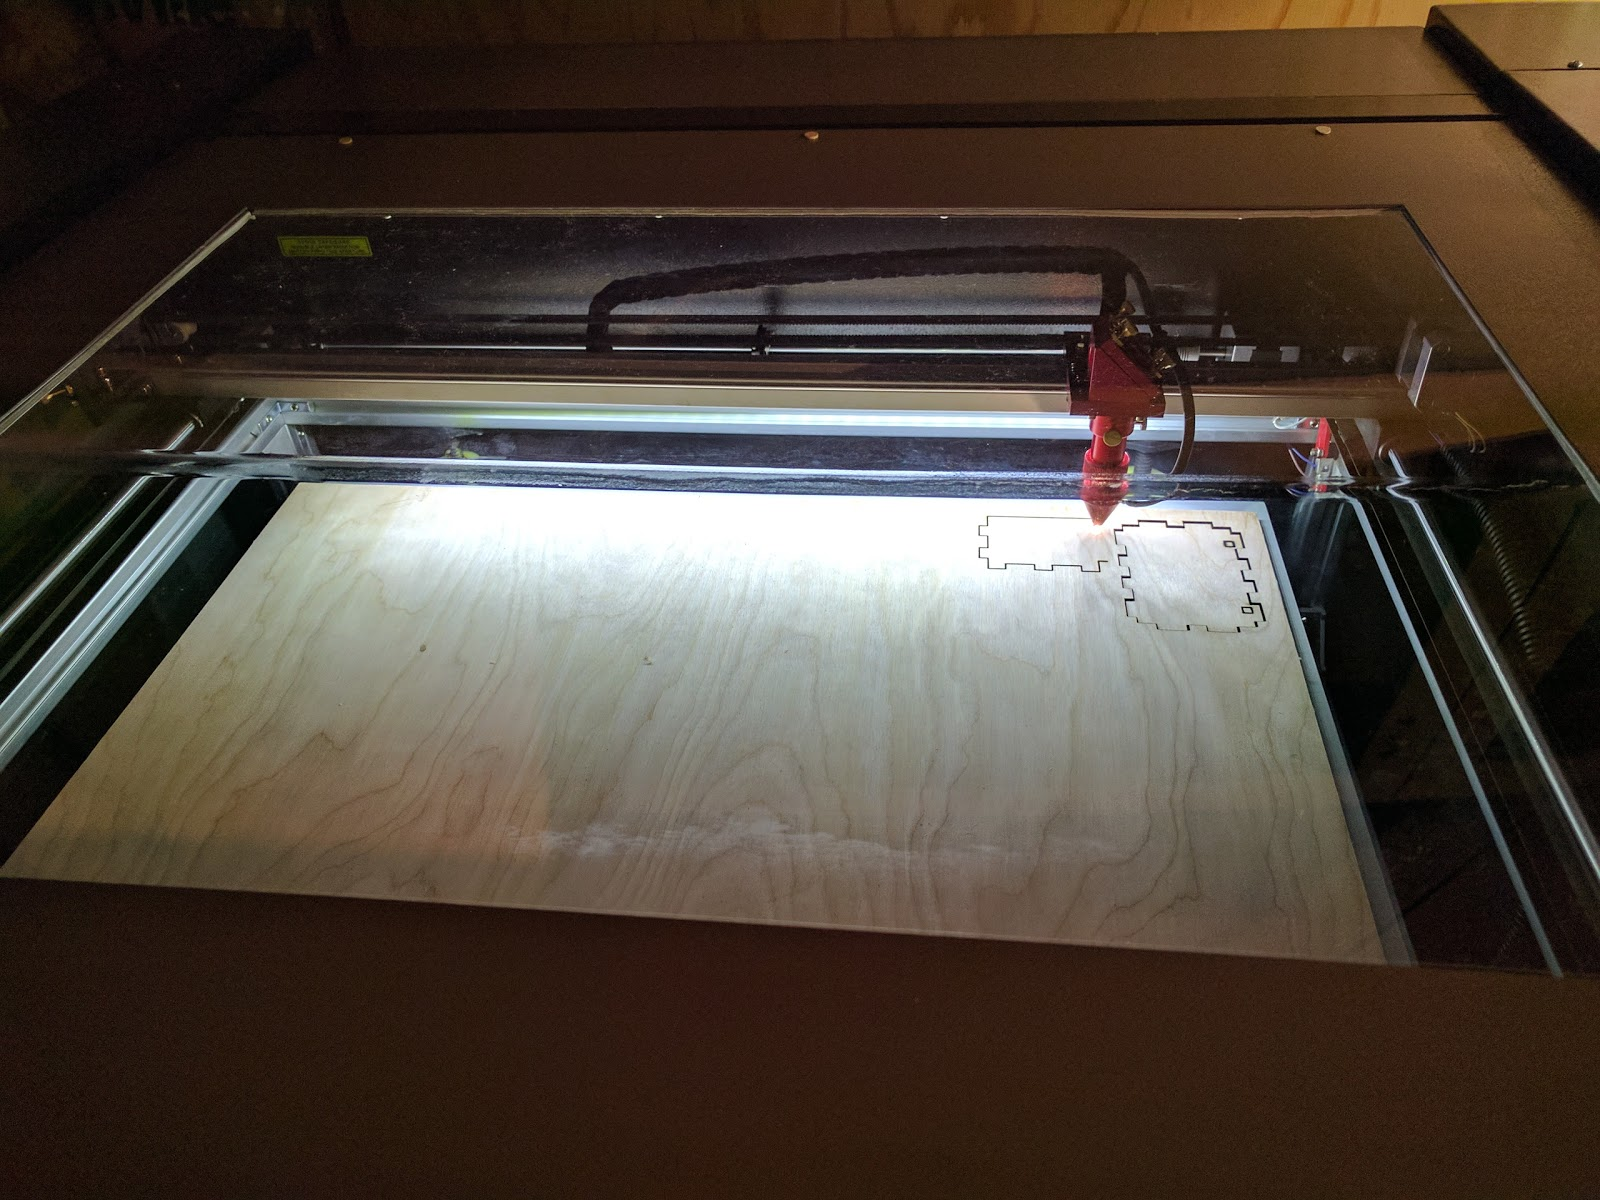 Microcarpentry: The Voccell DLS Laser Cutter